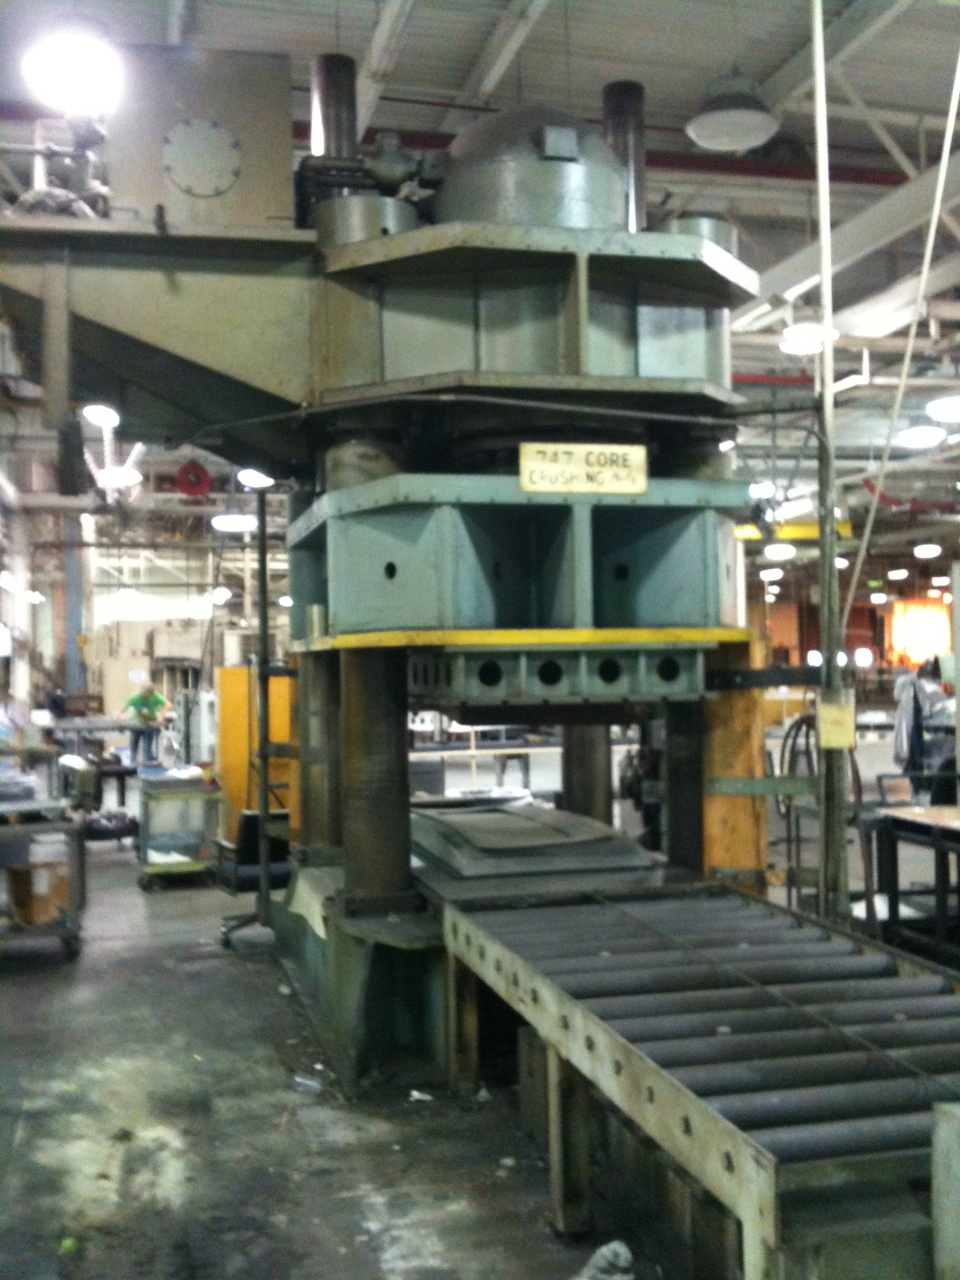 1 – USED 2000 TON K.R. WILSON DOWN ACTING HYDRAULIC PRESS C-3829